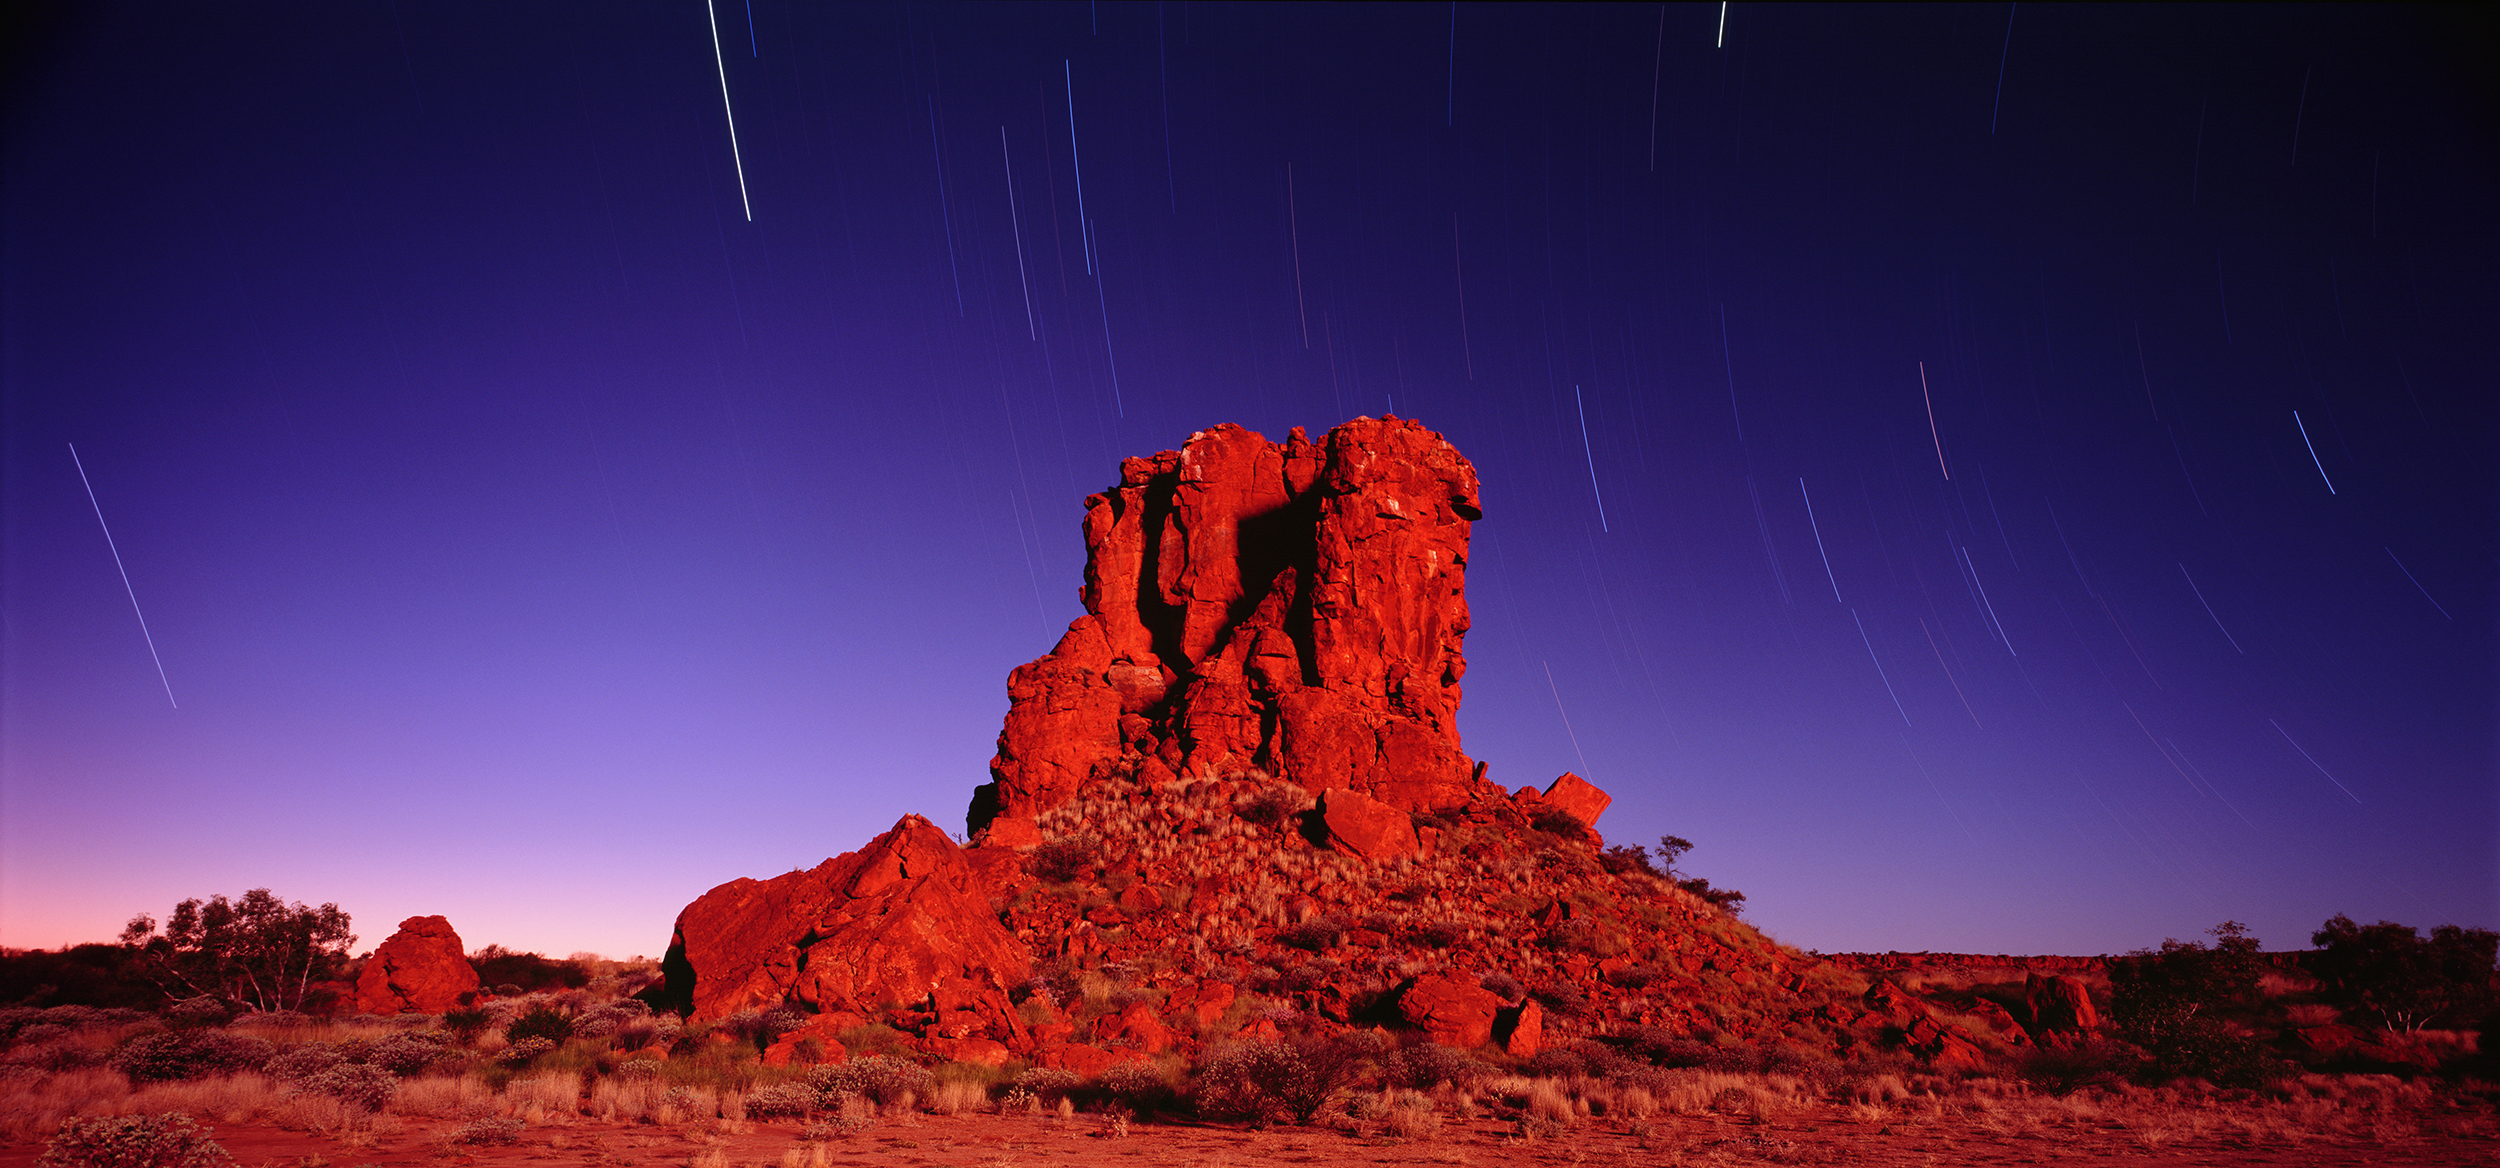 Star Trails, Hanging Rock, Rudall River National Park, Little Sandy Desert, Western Australia, 2011.